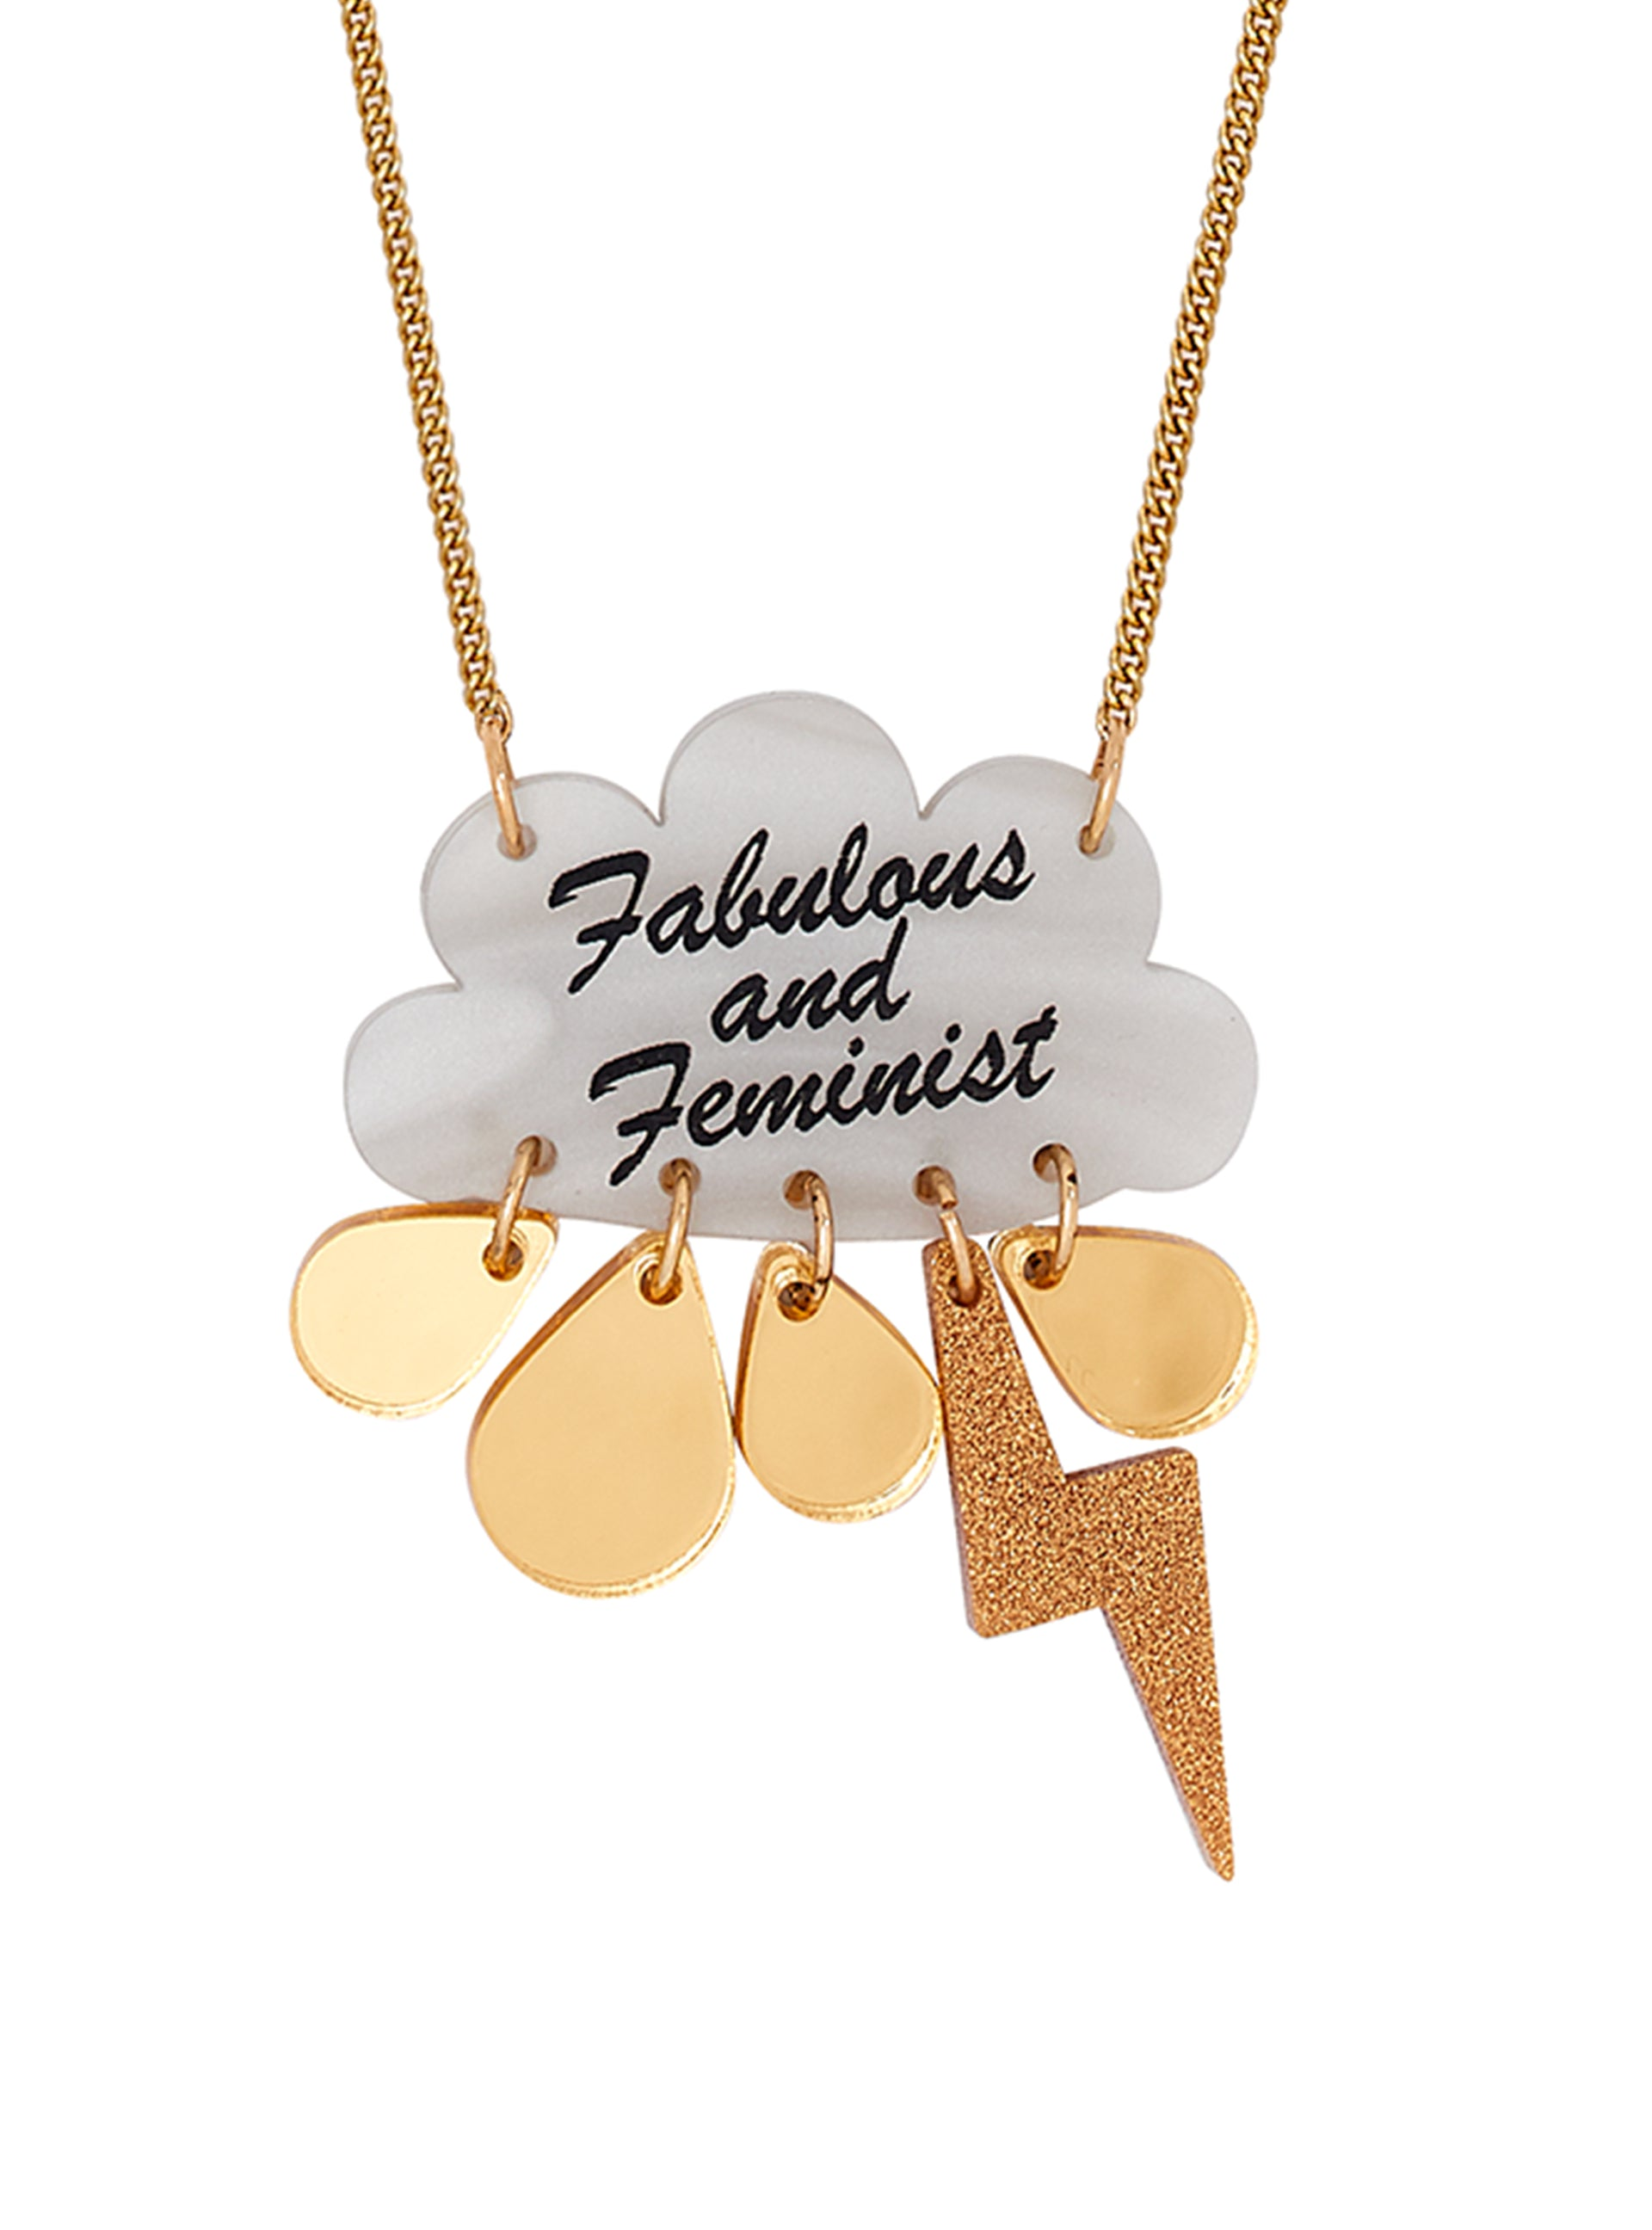 Fabulous and Feminist Necklace